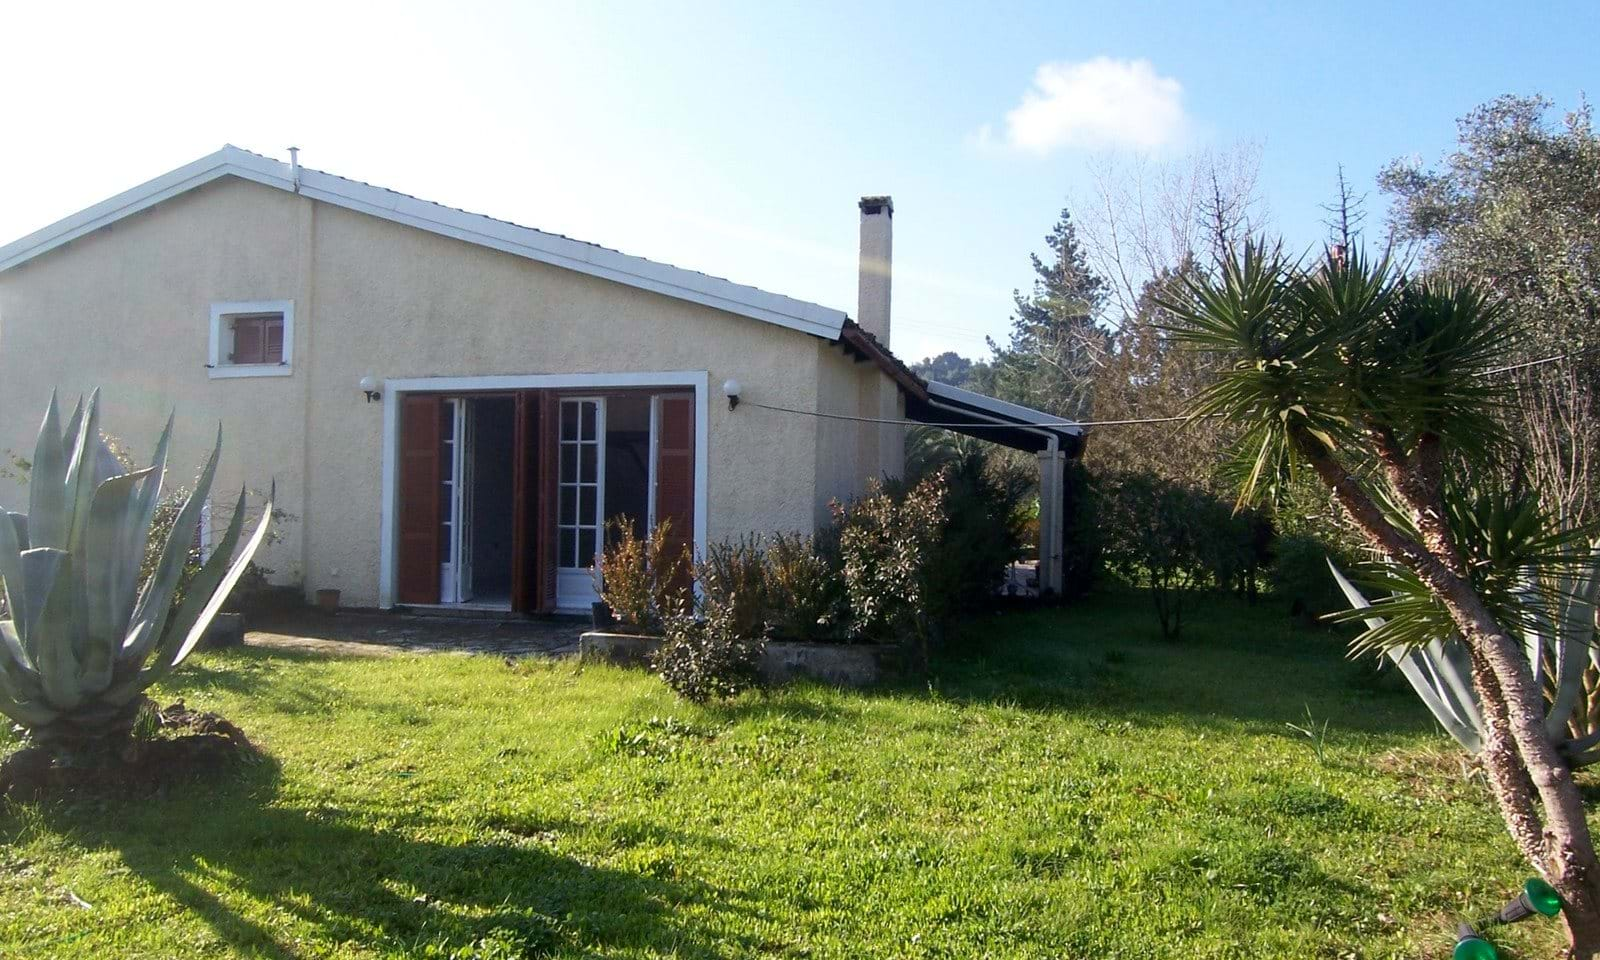 House for sale in Agios Ioannis, Corfu